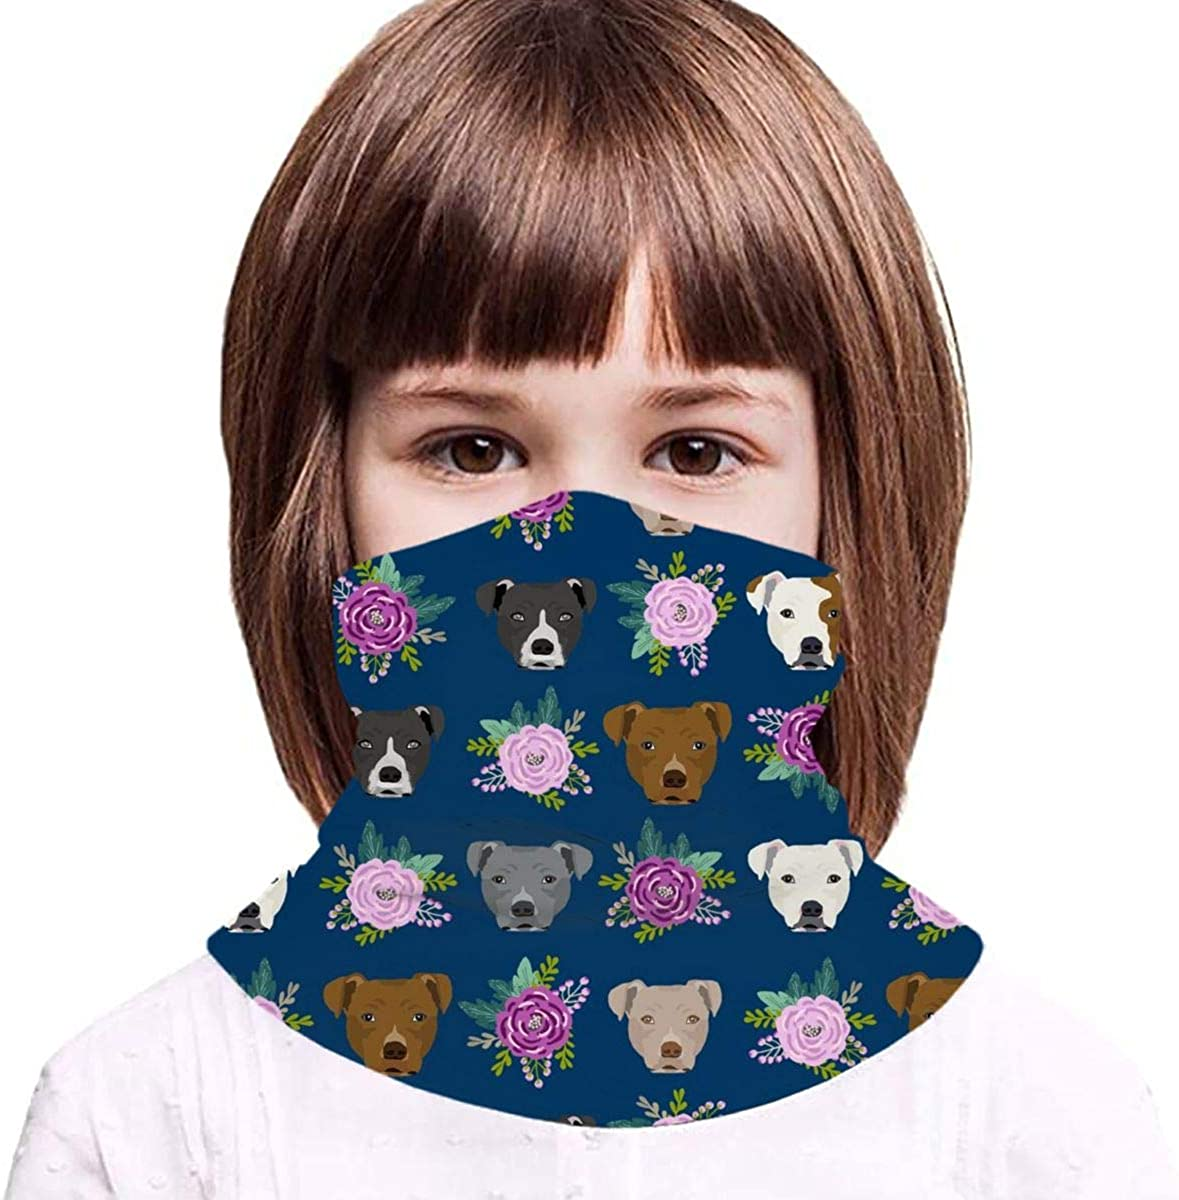 Pitbull Floral Head Design Pitbulls Floral Dog Head Kids Face Mask Dust Sun UV Protection Neck Gaiter Balaclava Face Cover Scarf Summer Breathable for Cycling Fishing Outdoors